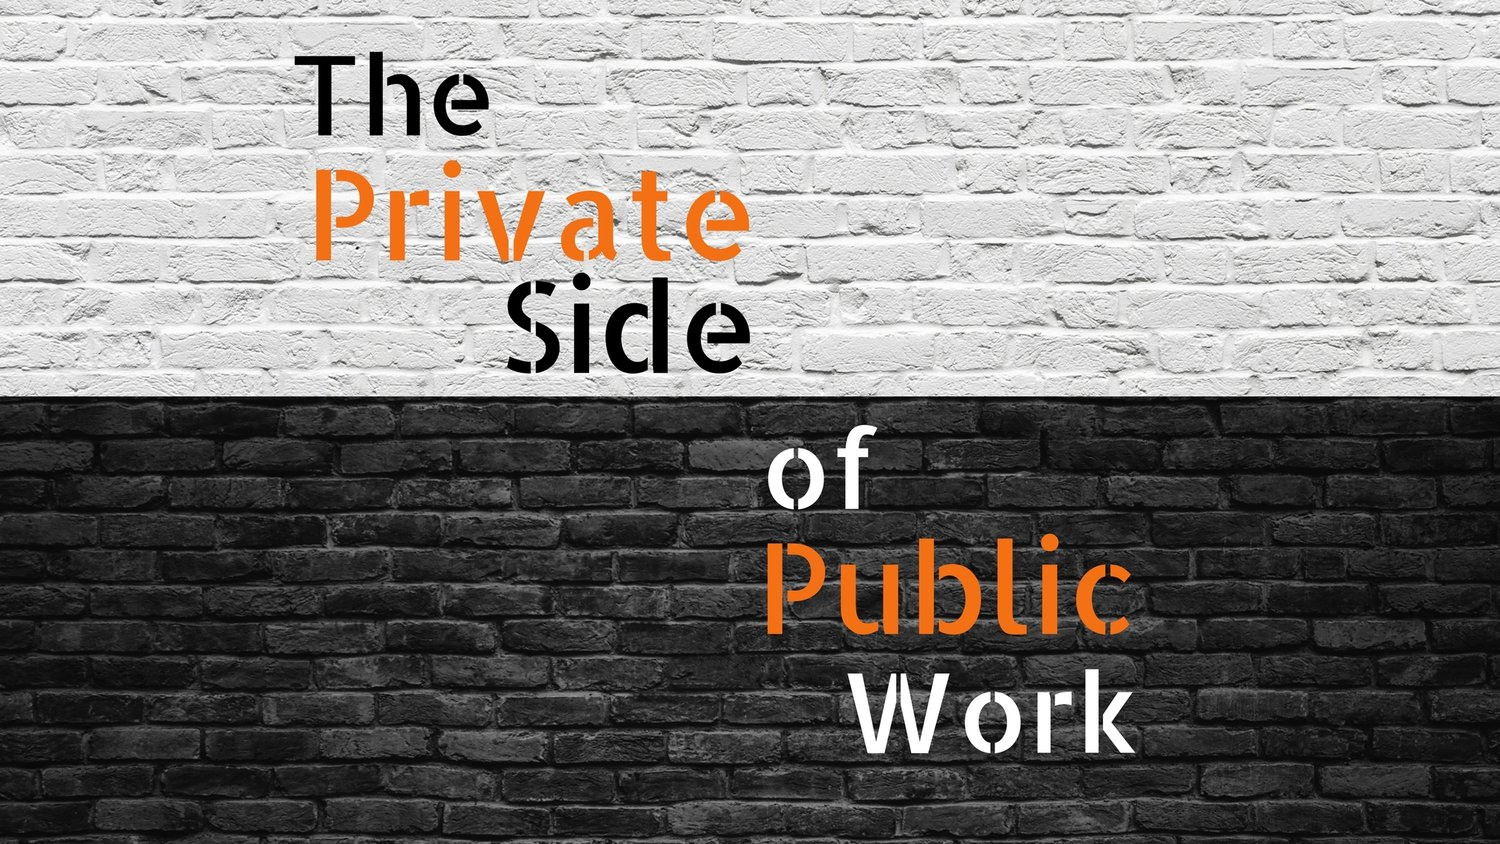 The Private Side of Public Work